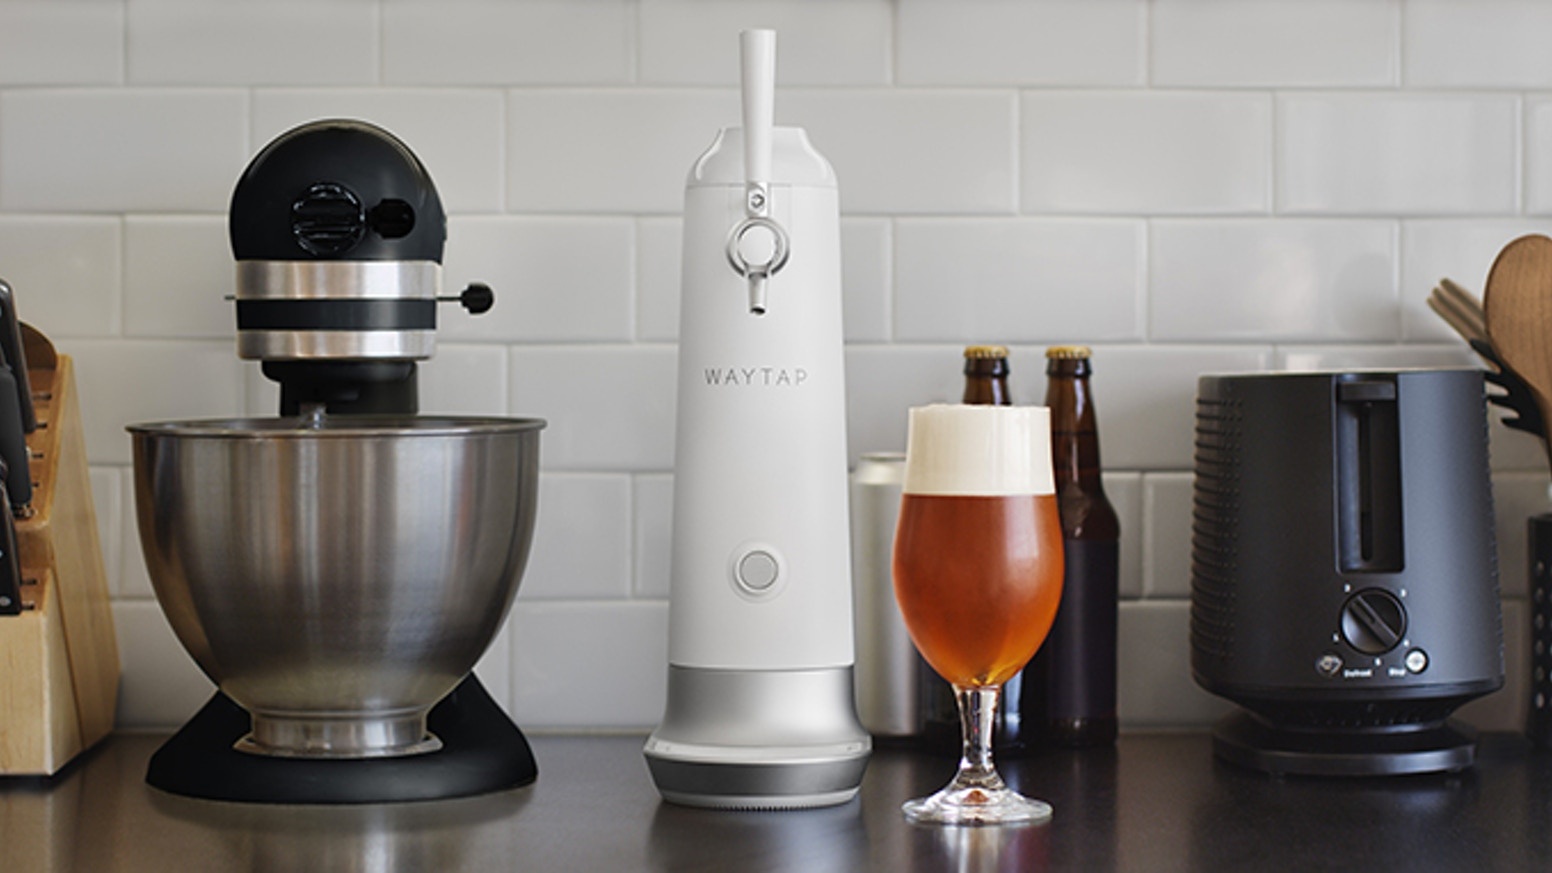 Beer tap systems for home - Sound Waves Convert The Beer S Carbonation Into Densely Compacted Uniform Micro Foam Bubbles